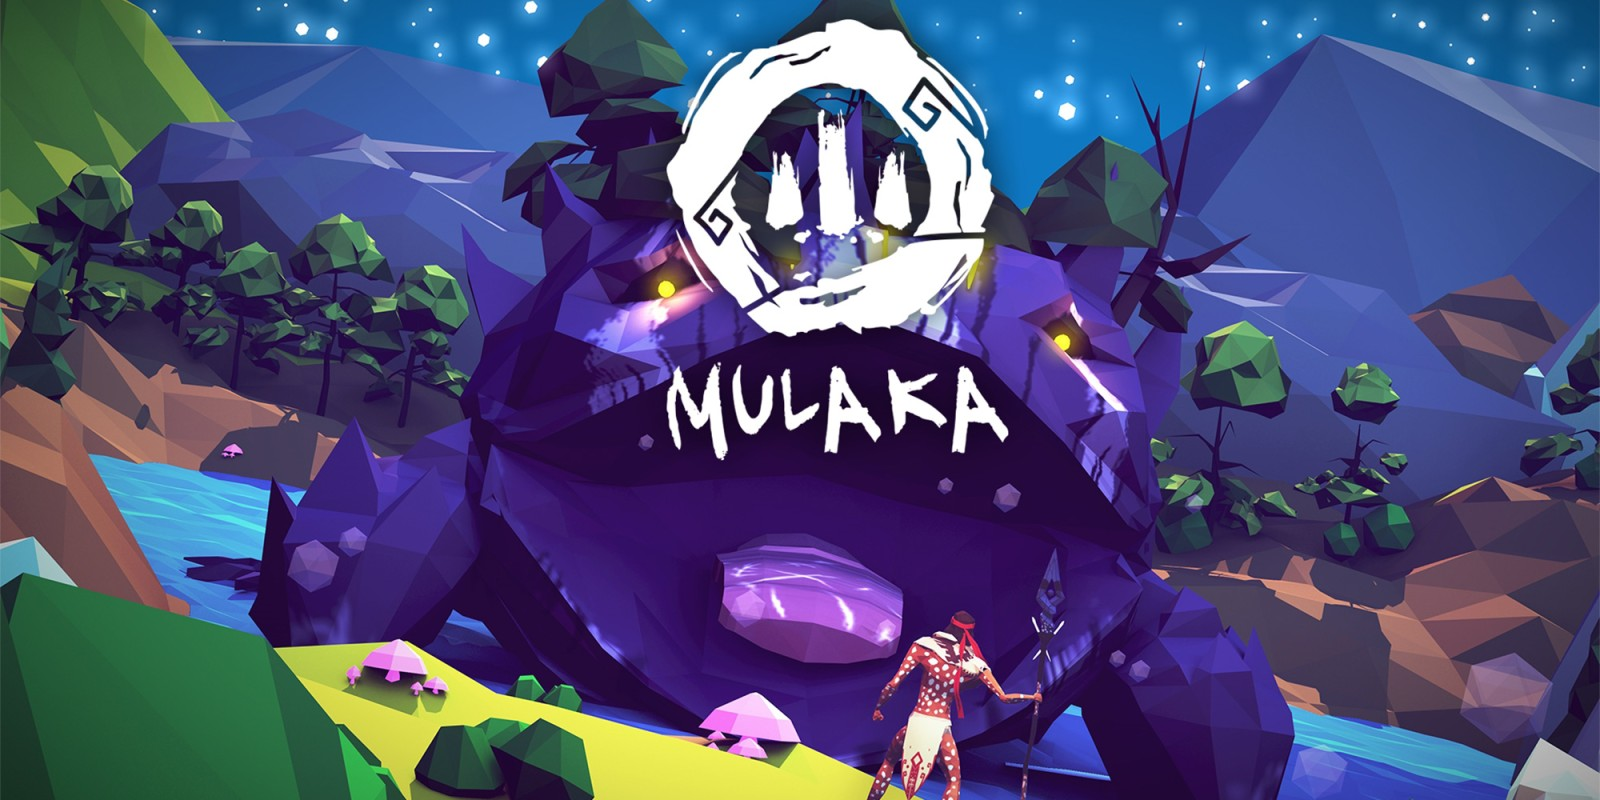 Mulaka Nintendo Switch Download Software Games Nintendo